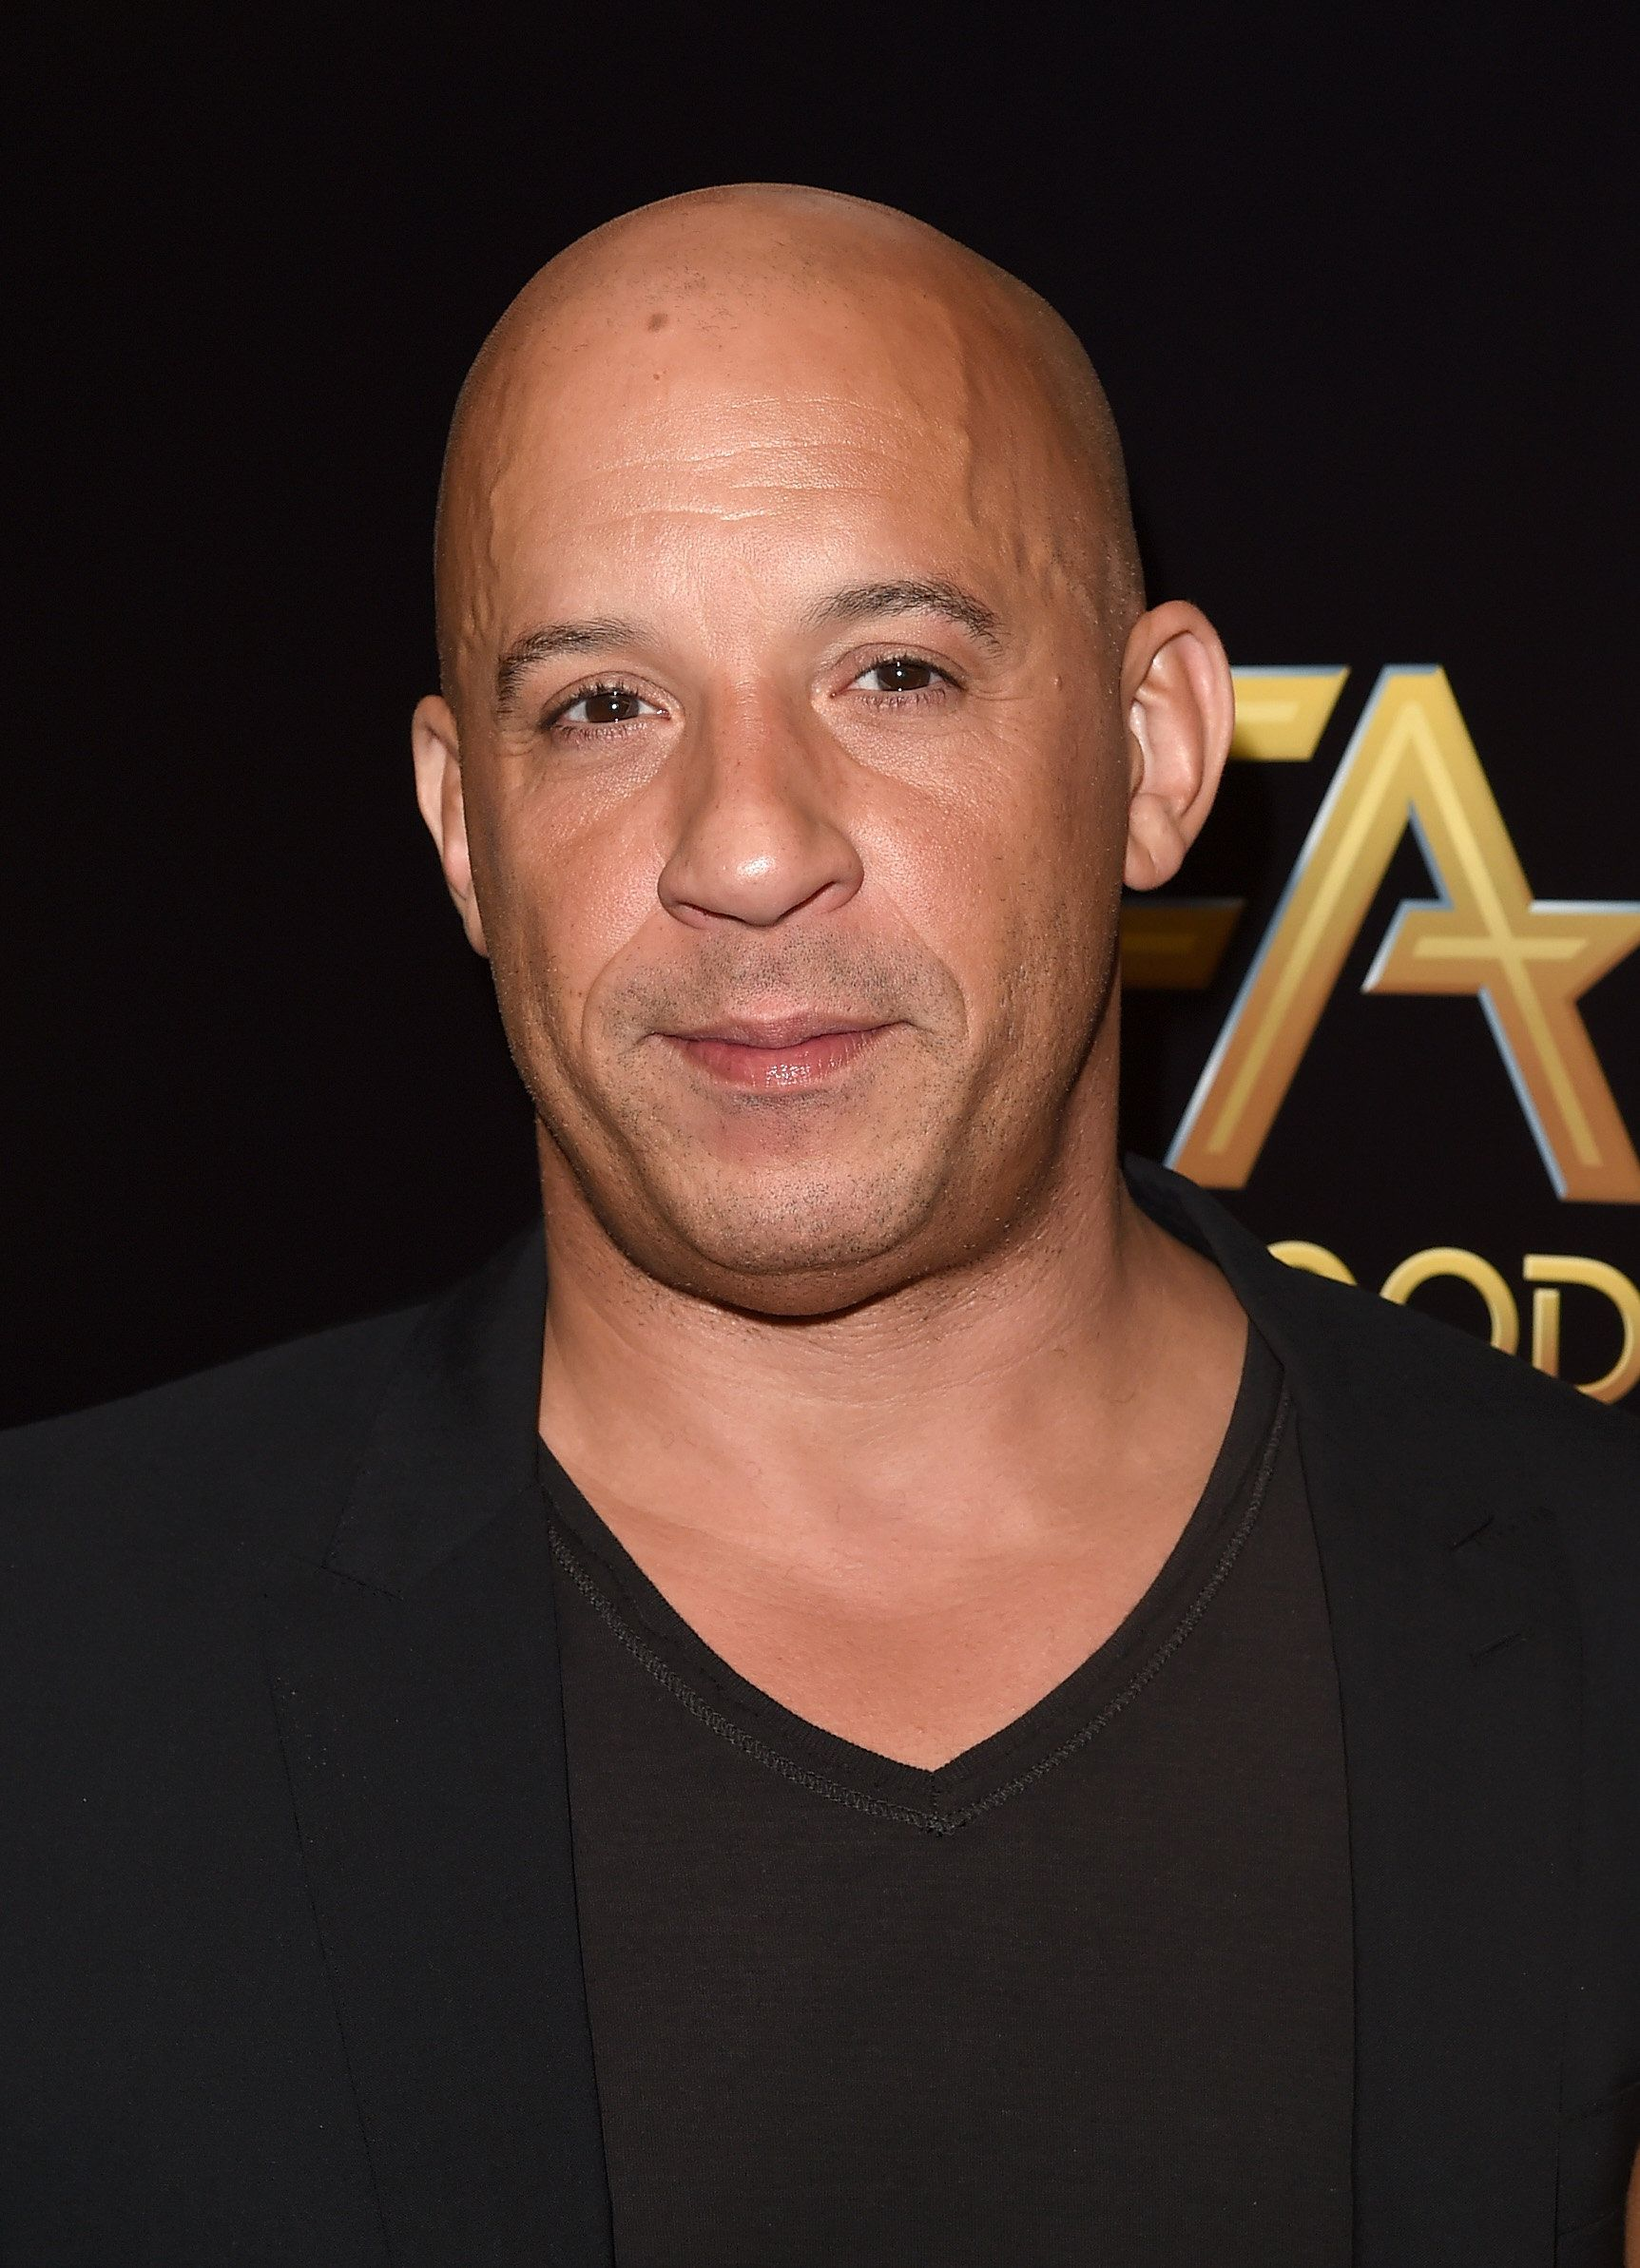 BEVERLY HILLS, CA - NOVEMBER 01:  Actor Vin Diesel poses in the press room during the 19th Annual Hollywood Film Awards at The Beverly Hilton Hotel on November 1, 2015 in Beverly Hills, California.  (Photo by Jason Merritt/Getty Images)